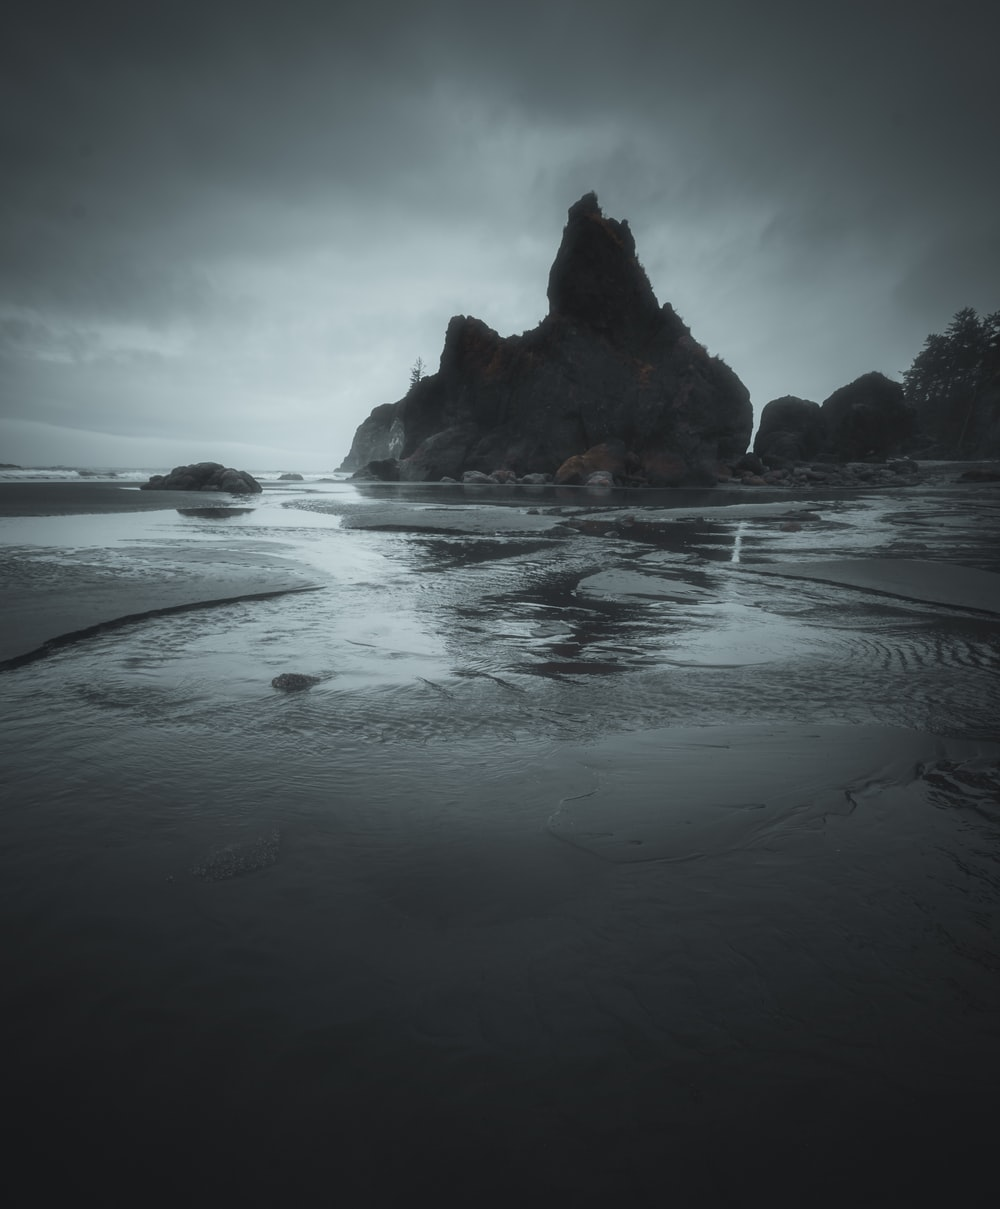 rock formation on body of water under cloudy sky